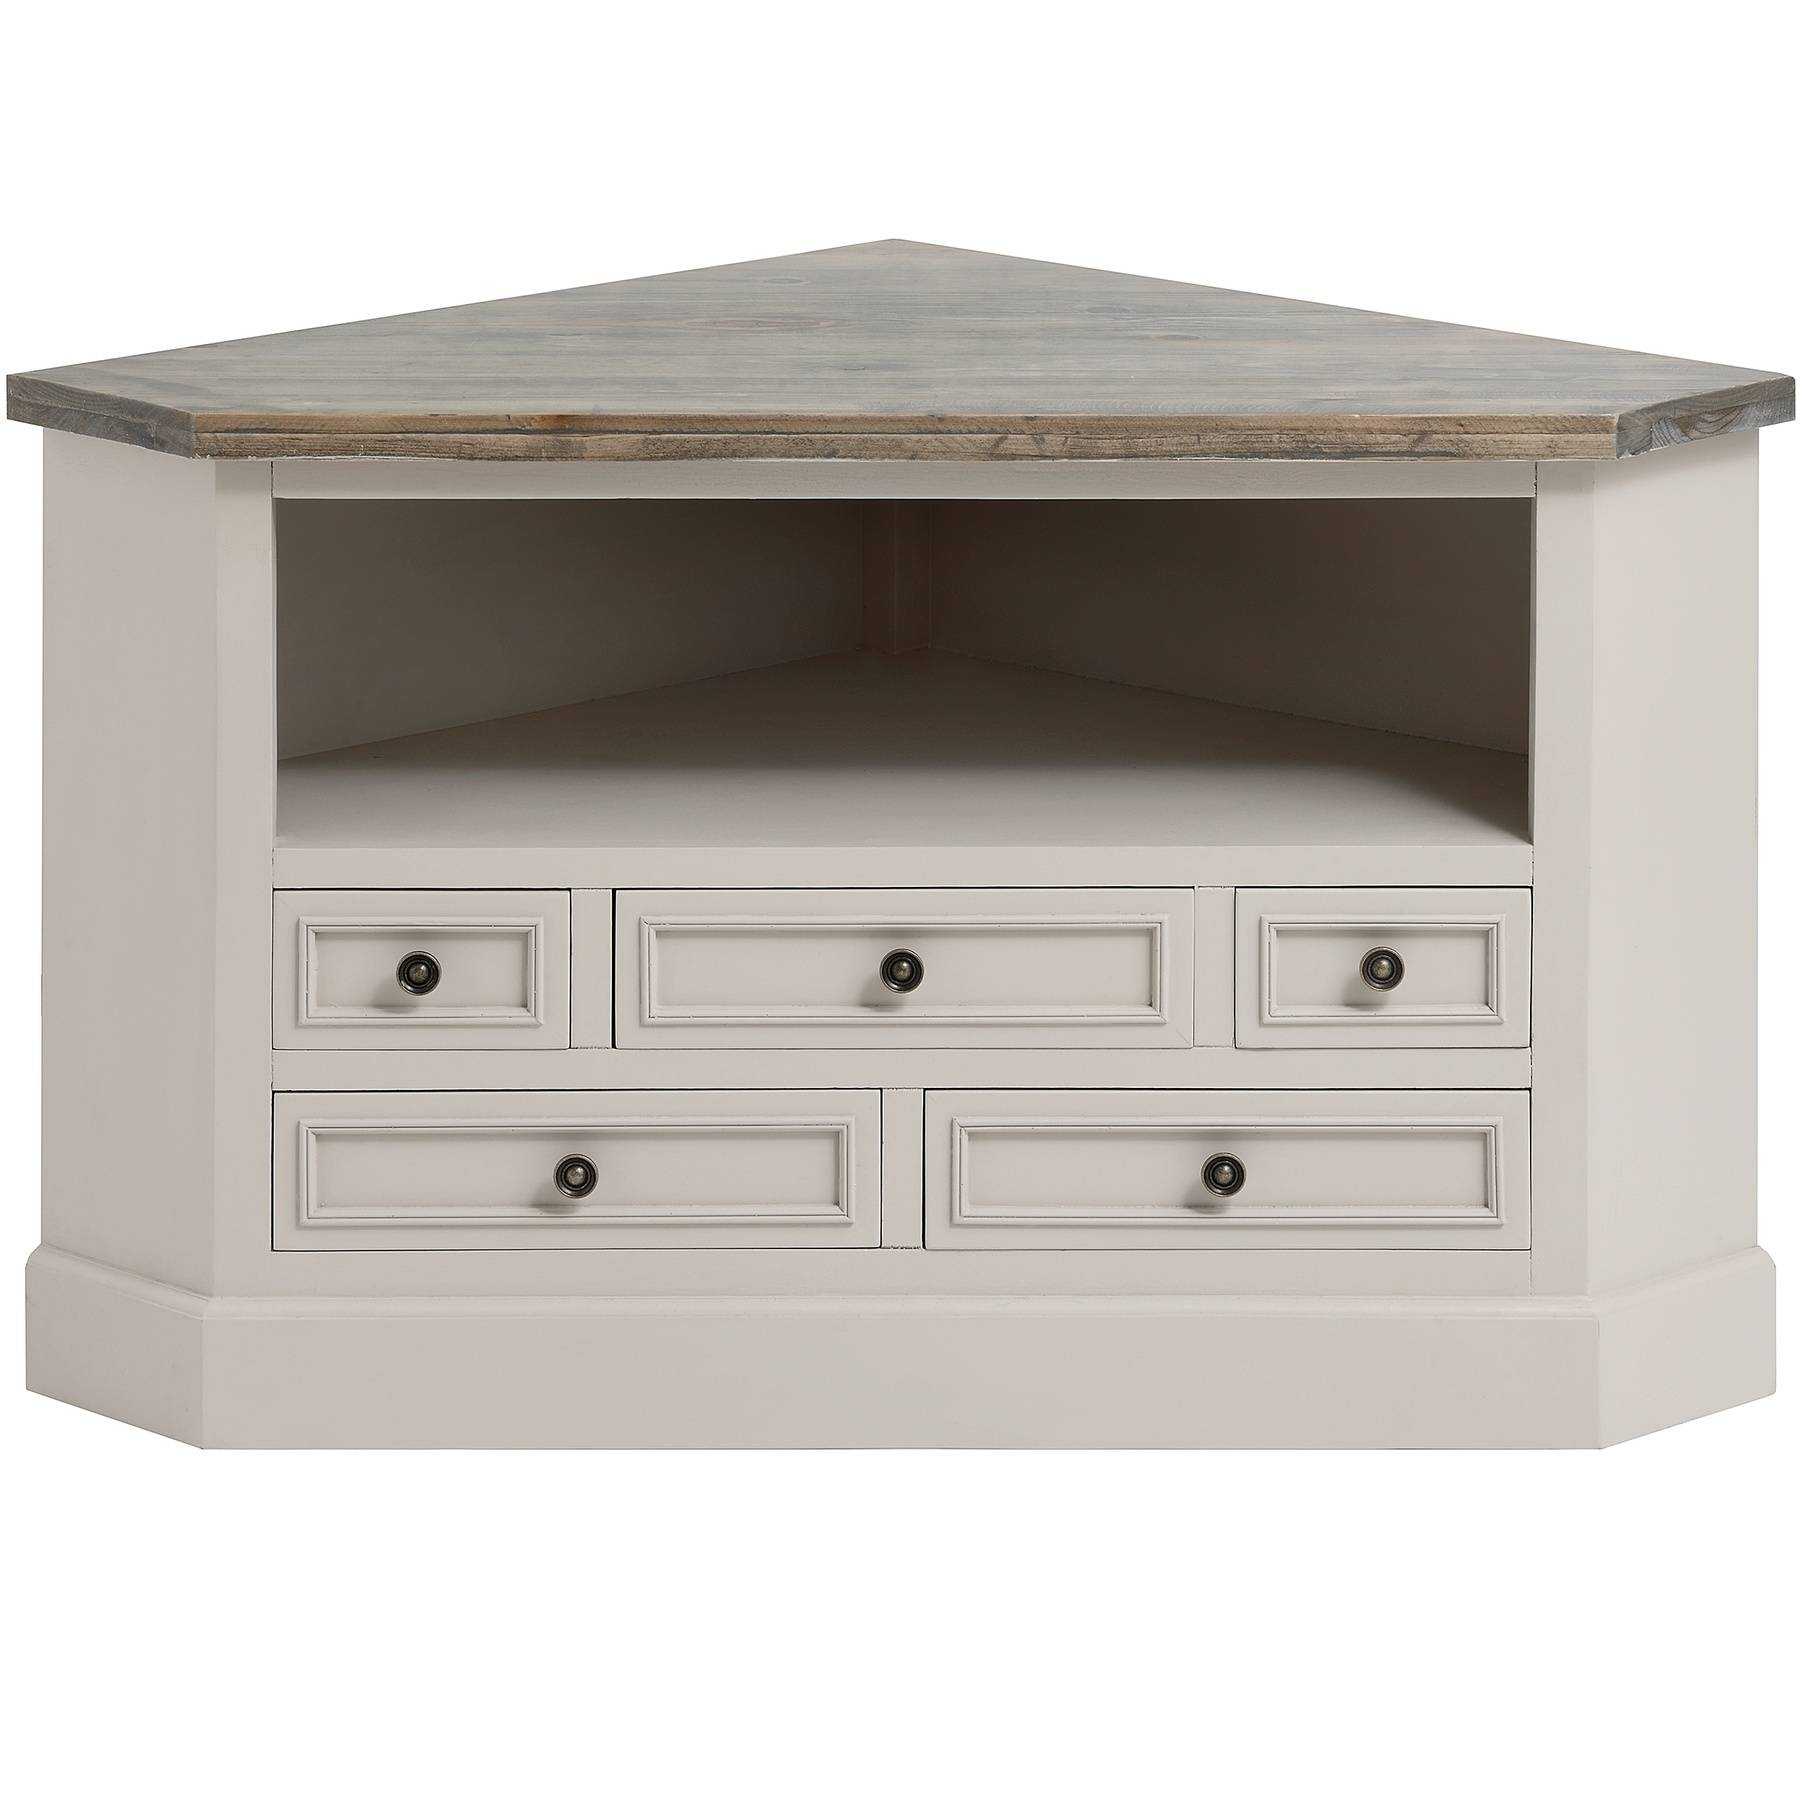 The Studley Collection Corner Tv Unit | From Baytree Interiors within Wooden Corner Tv Cabinets (Image 14 of 15)